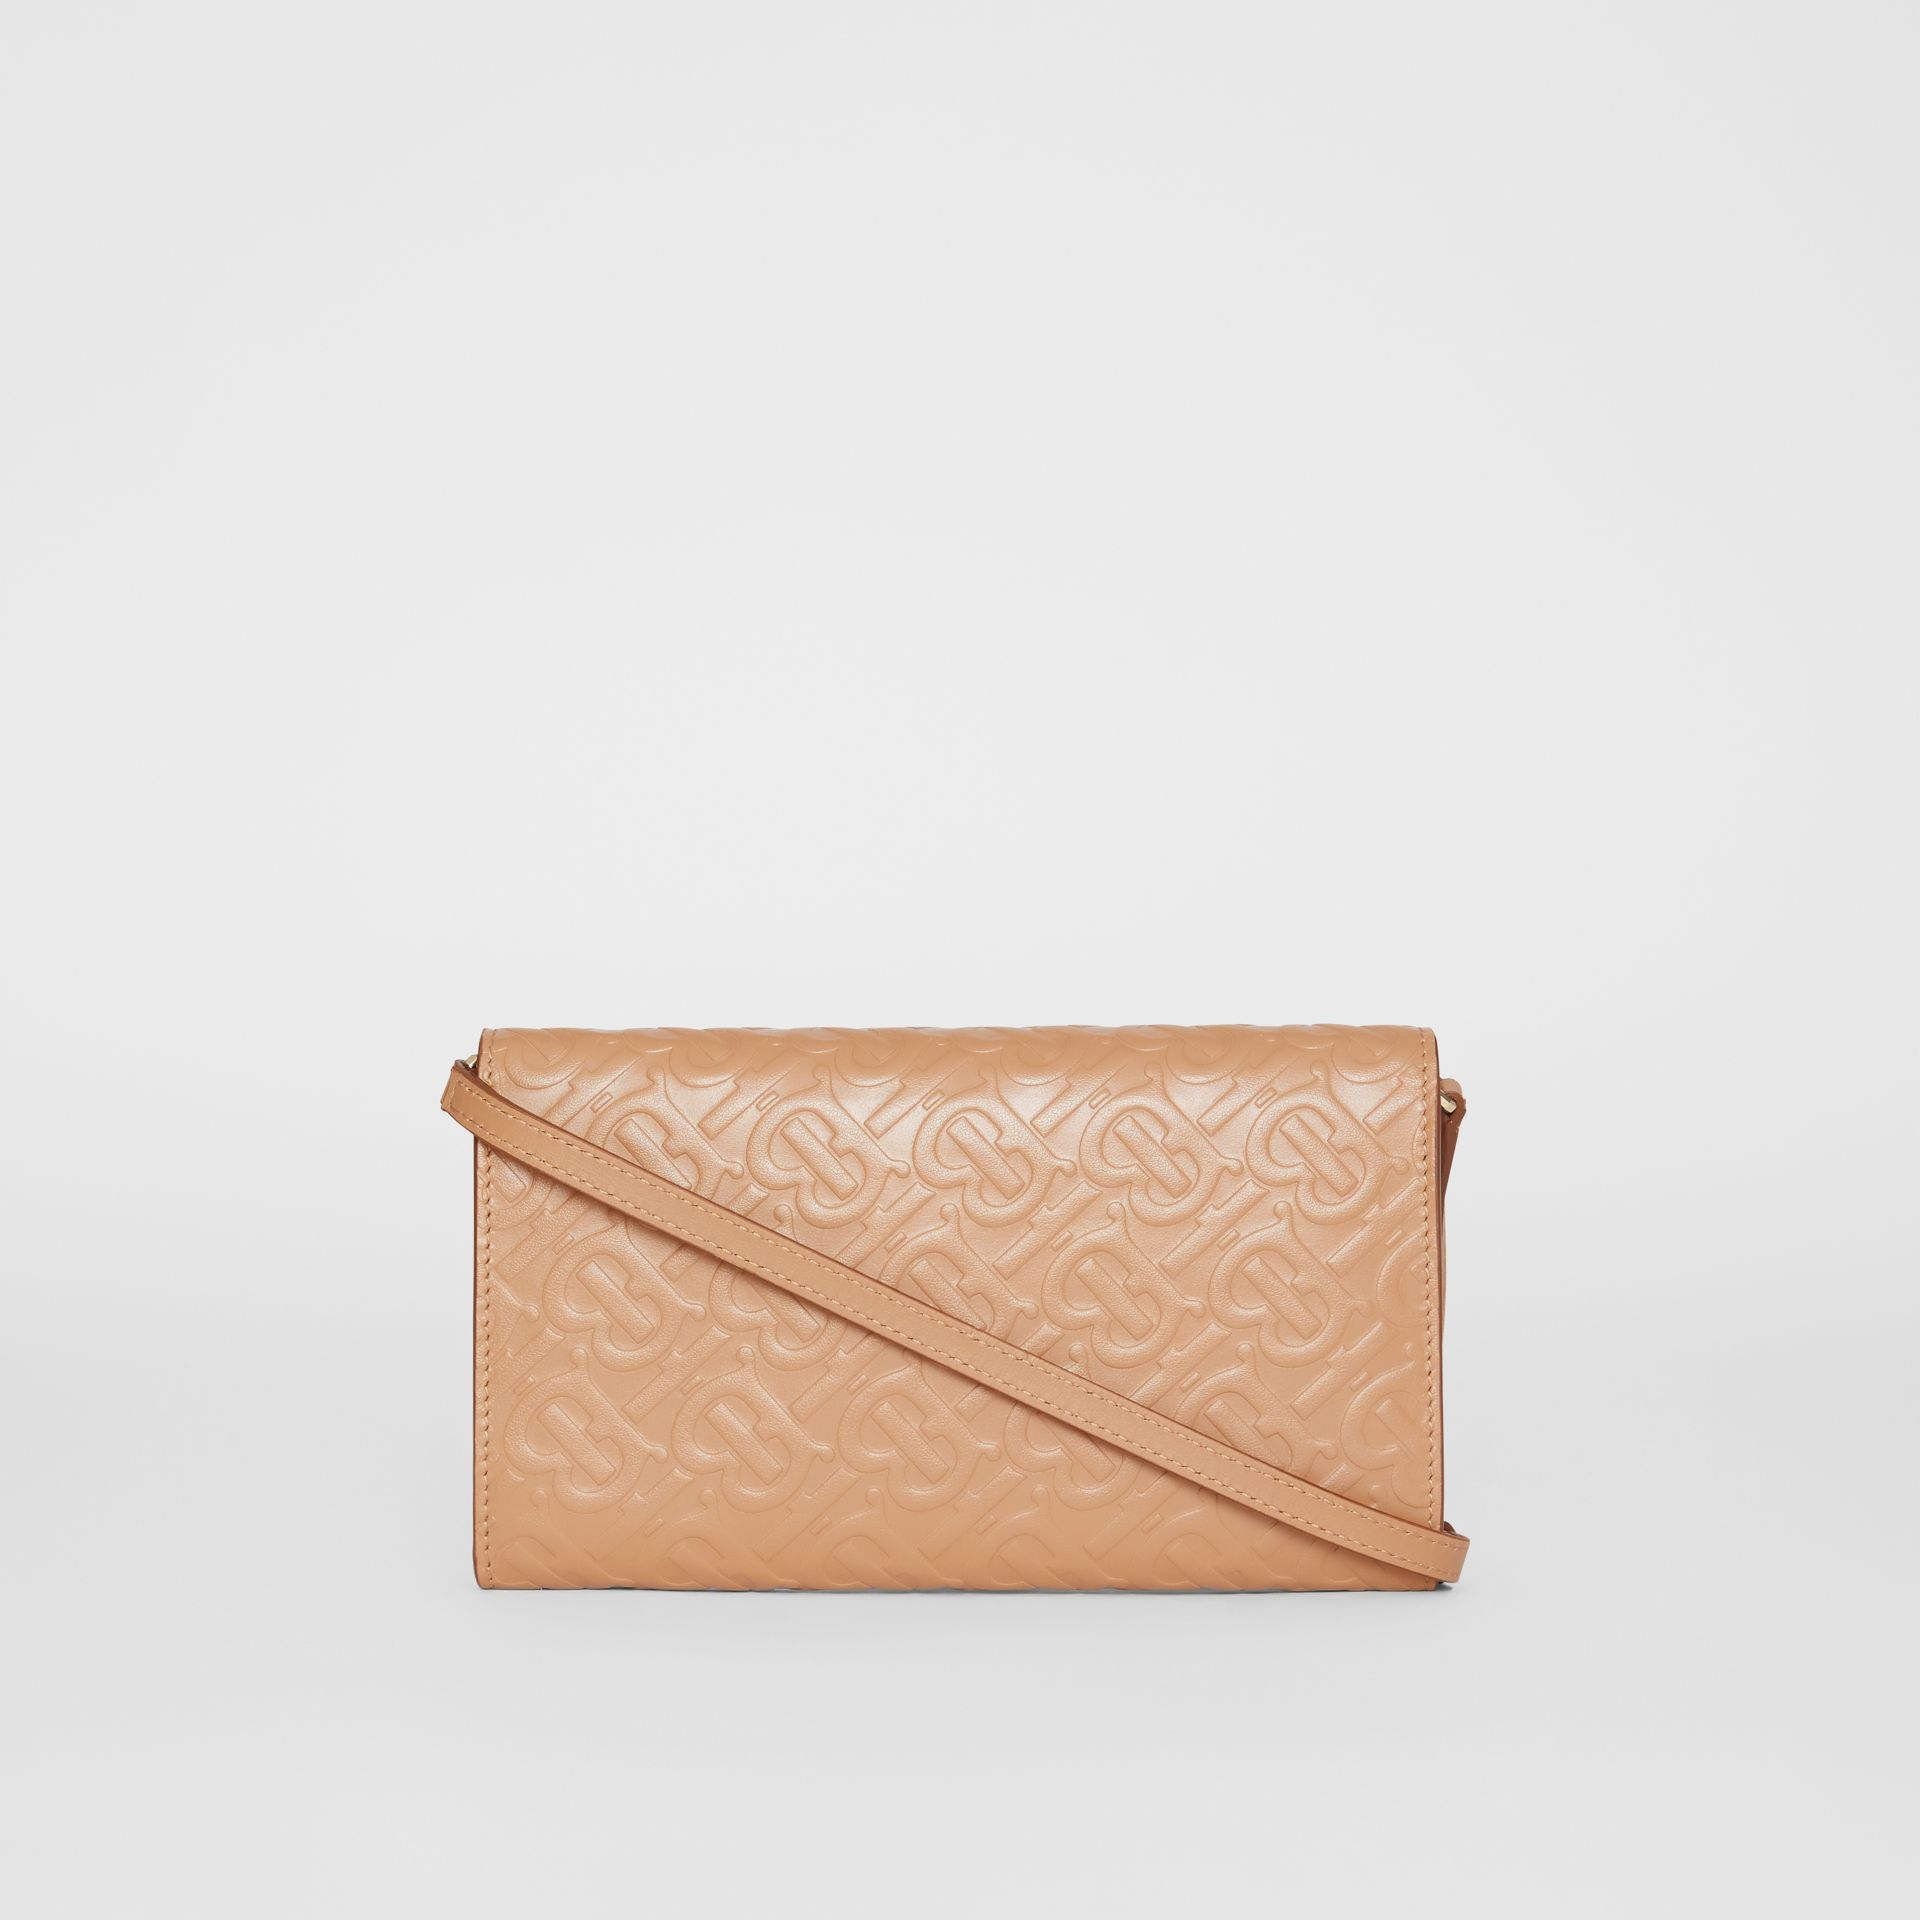 Monogram Leather Wallet with Detachable Strap in Light Camel - Women | Burberry United Kingdom - gallery image 7